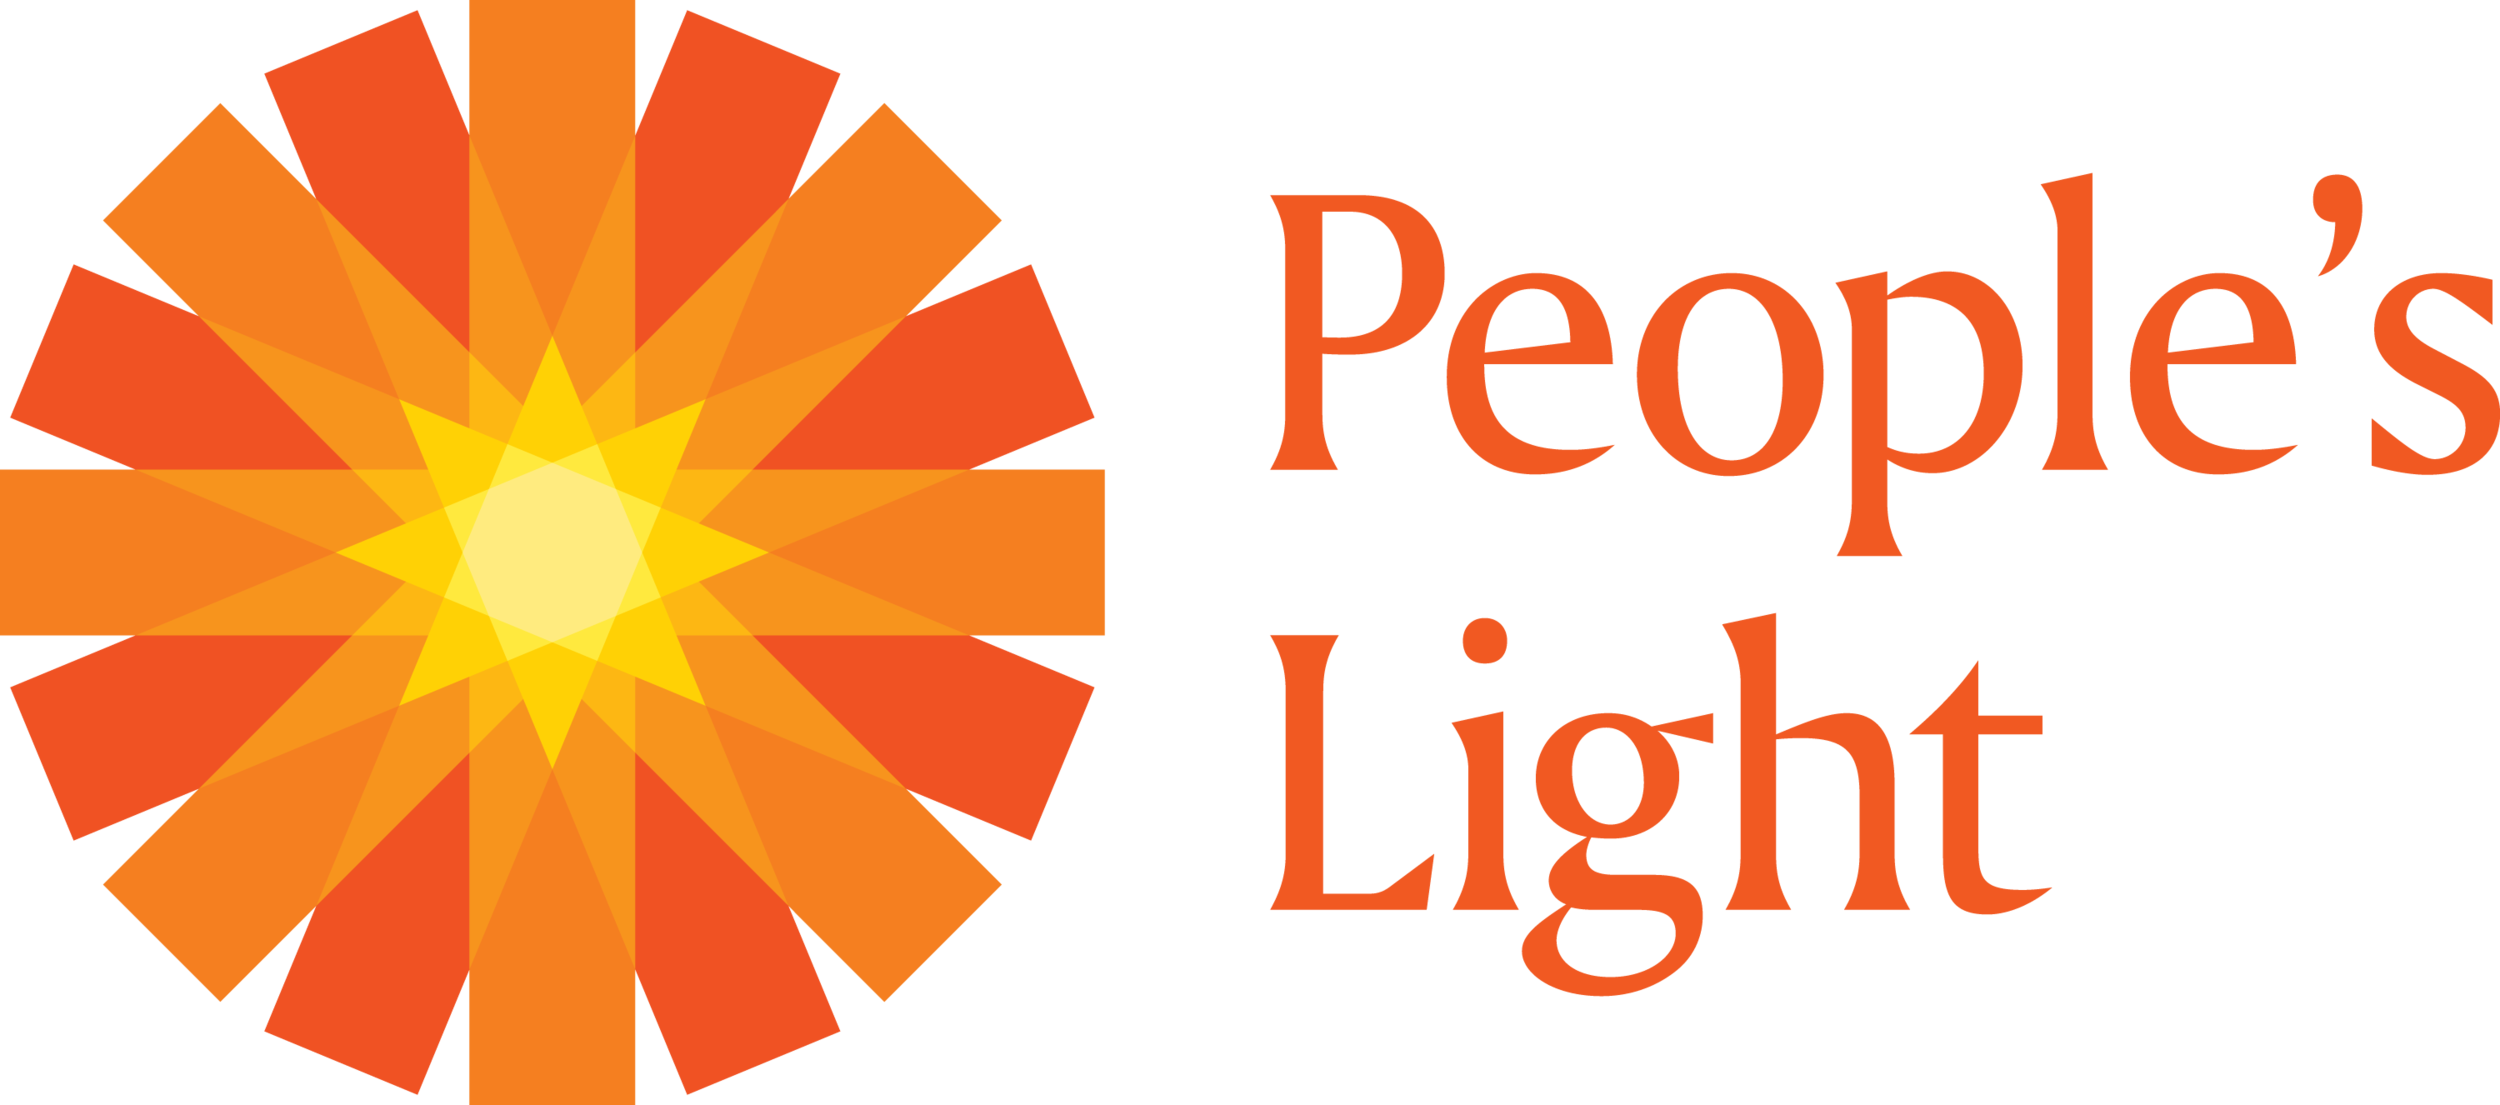 people's light logo.png